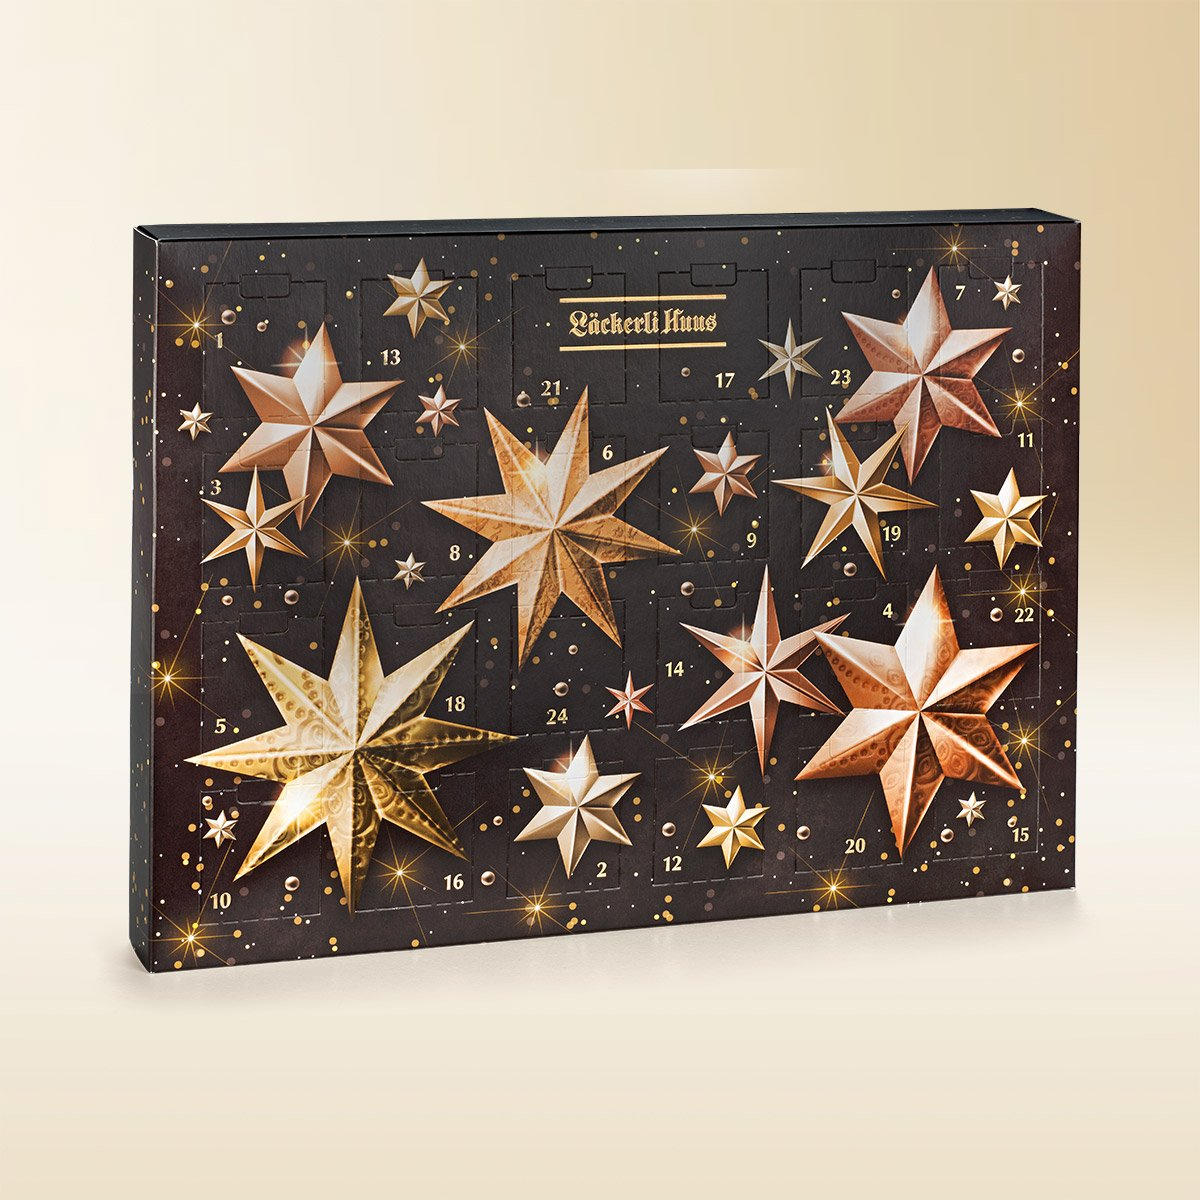 Pralines and truffes Advent calendar, 270g